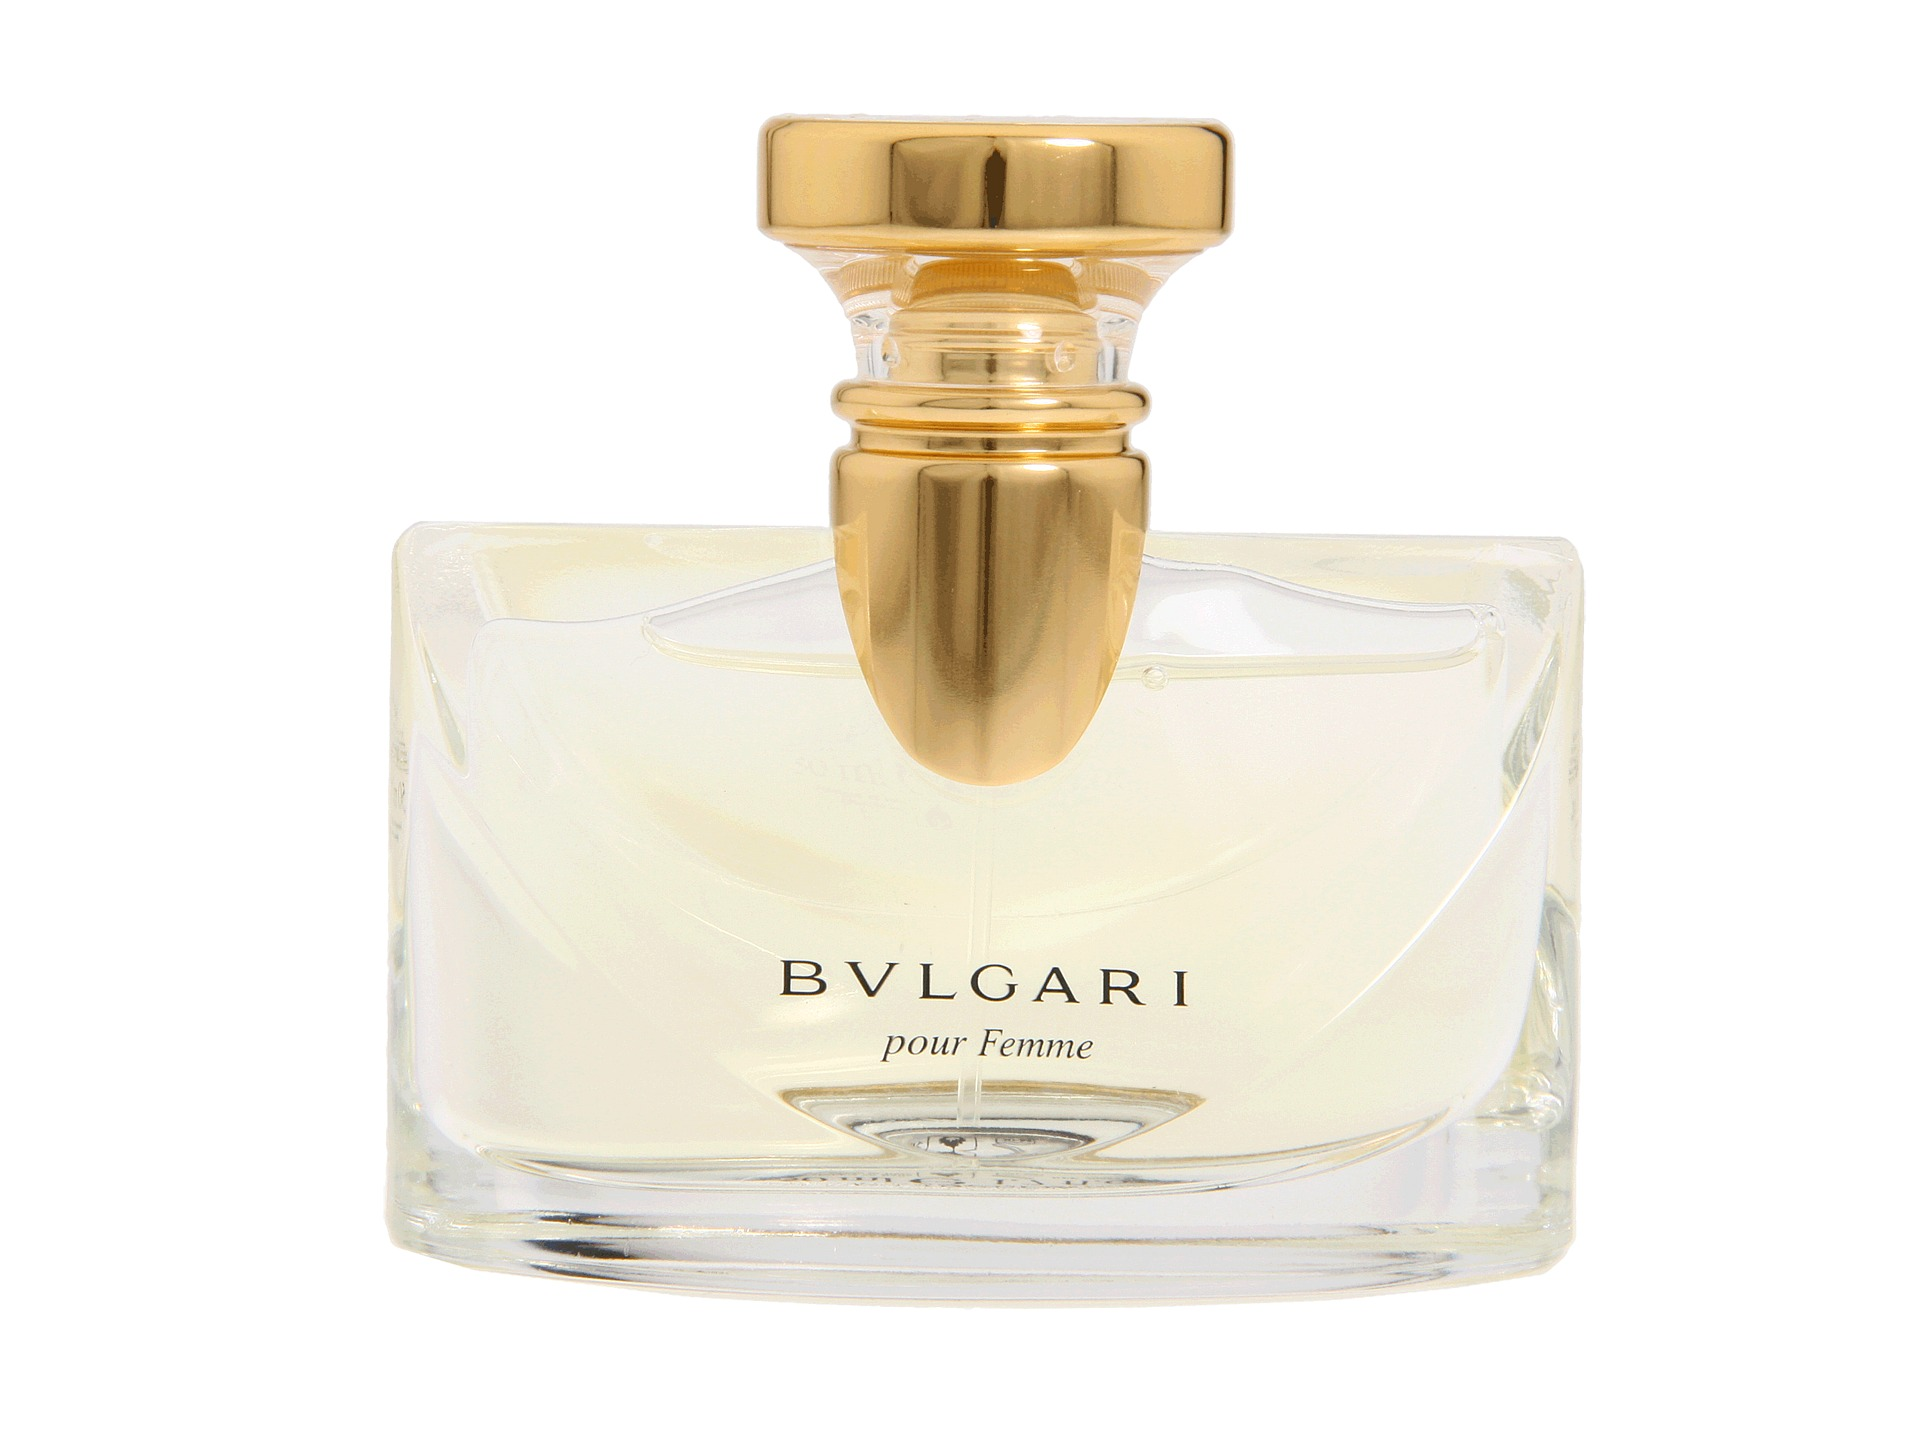 bvlgari pour femme eau de parfum spray 1 7 oz shipped. Black Bedroom Furniture Sets. Home Design Ideas